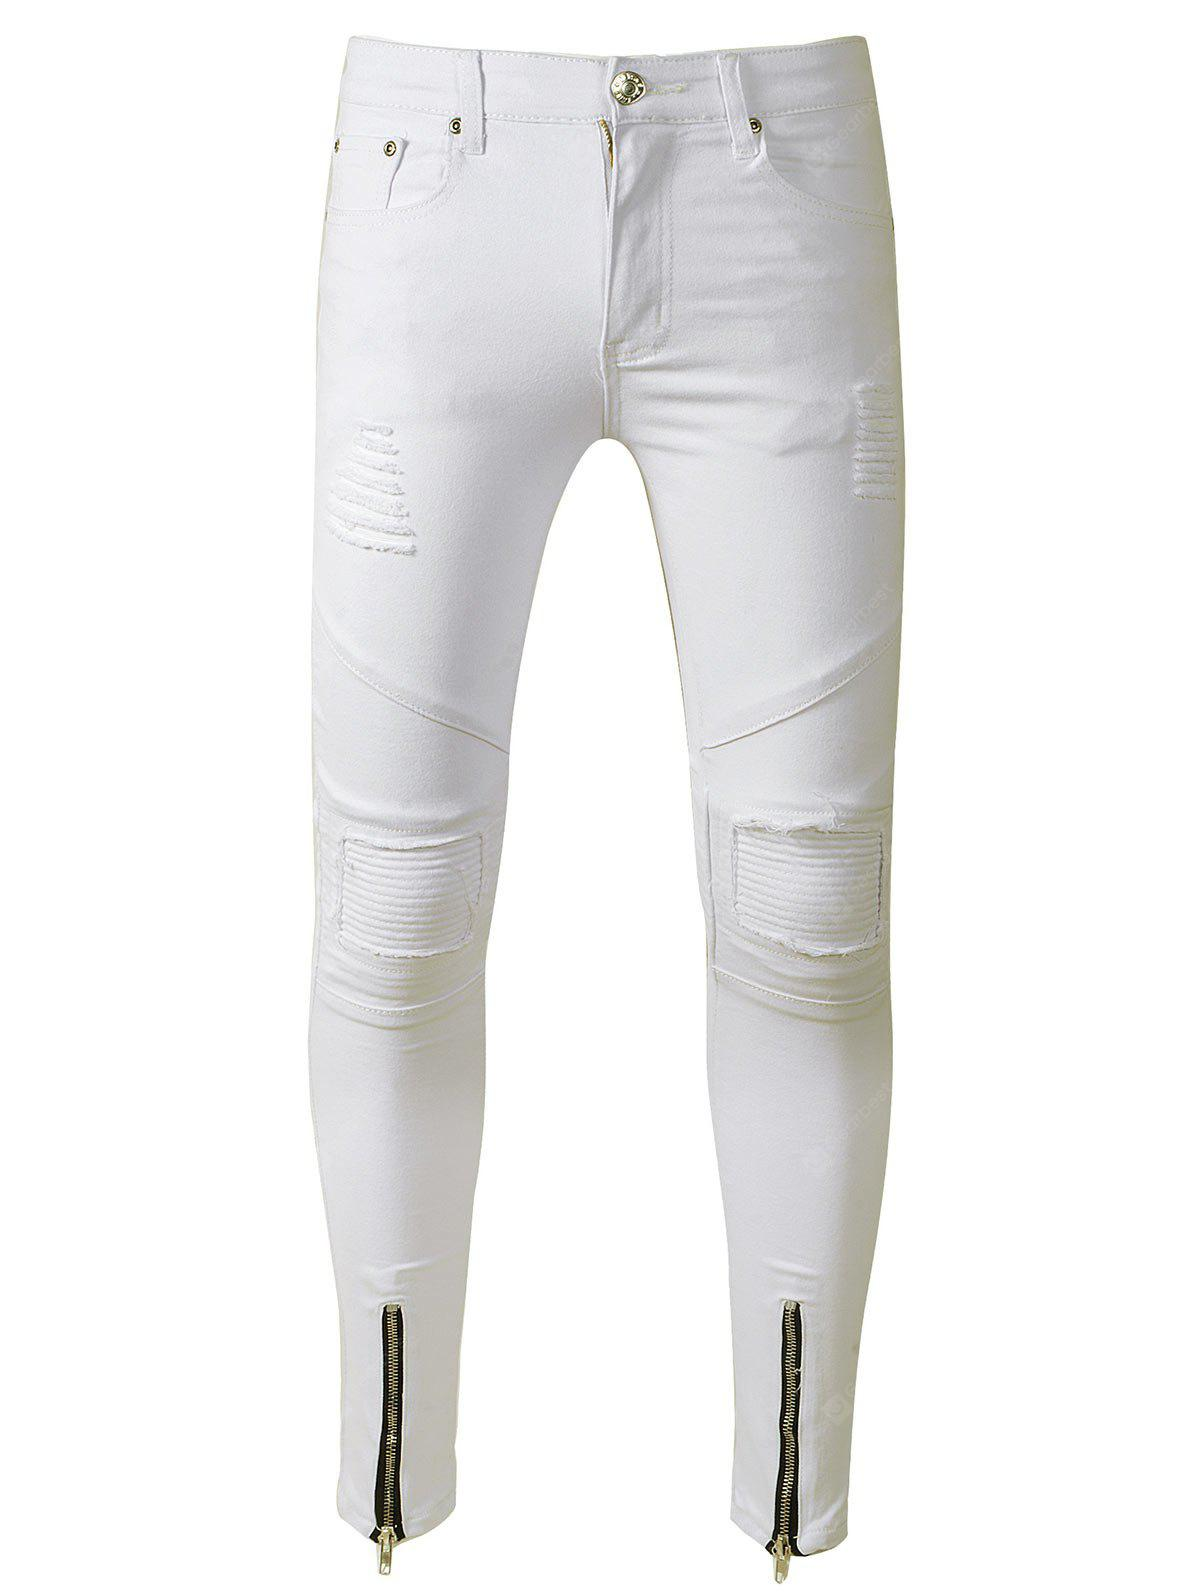 WHITE Skinny Zip Hem Distressed Biker Jeans